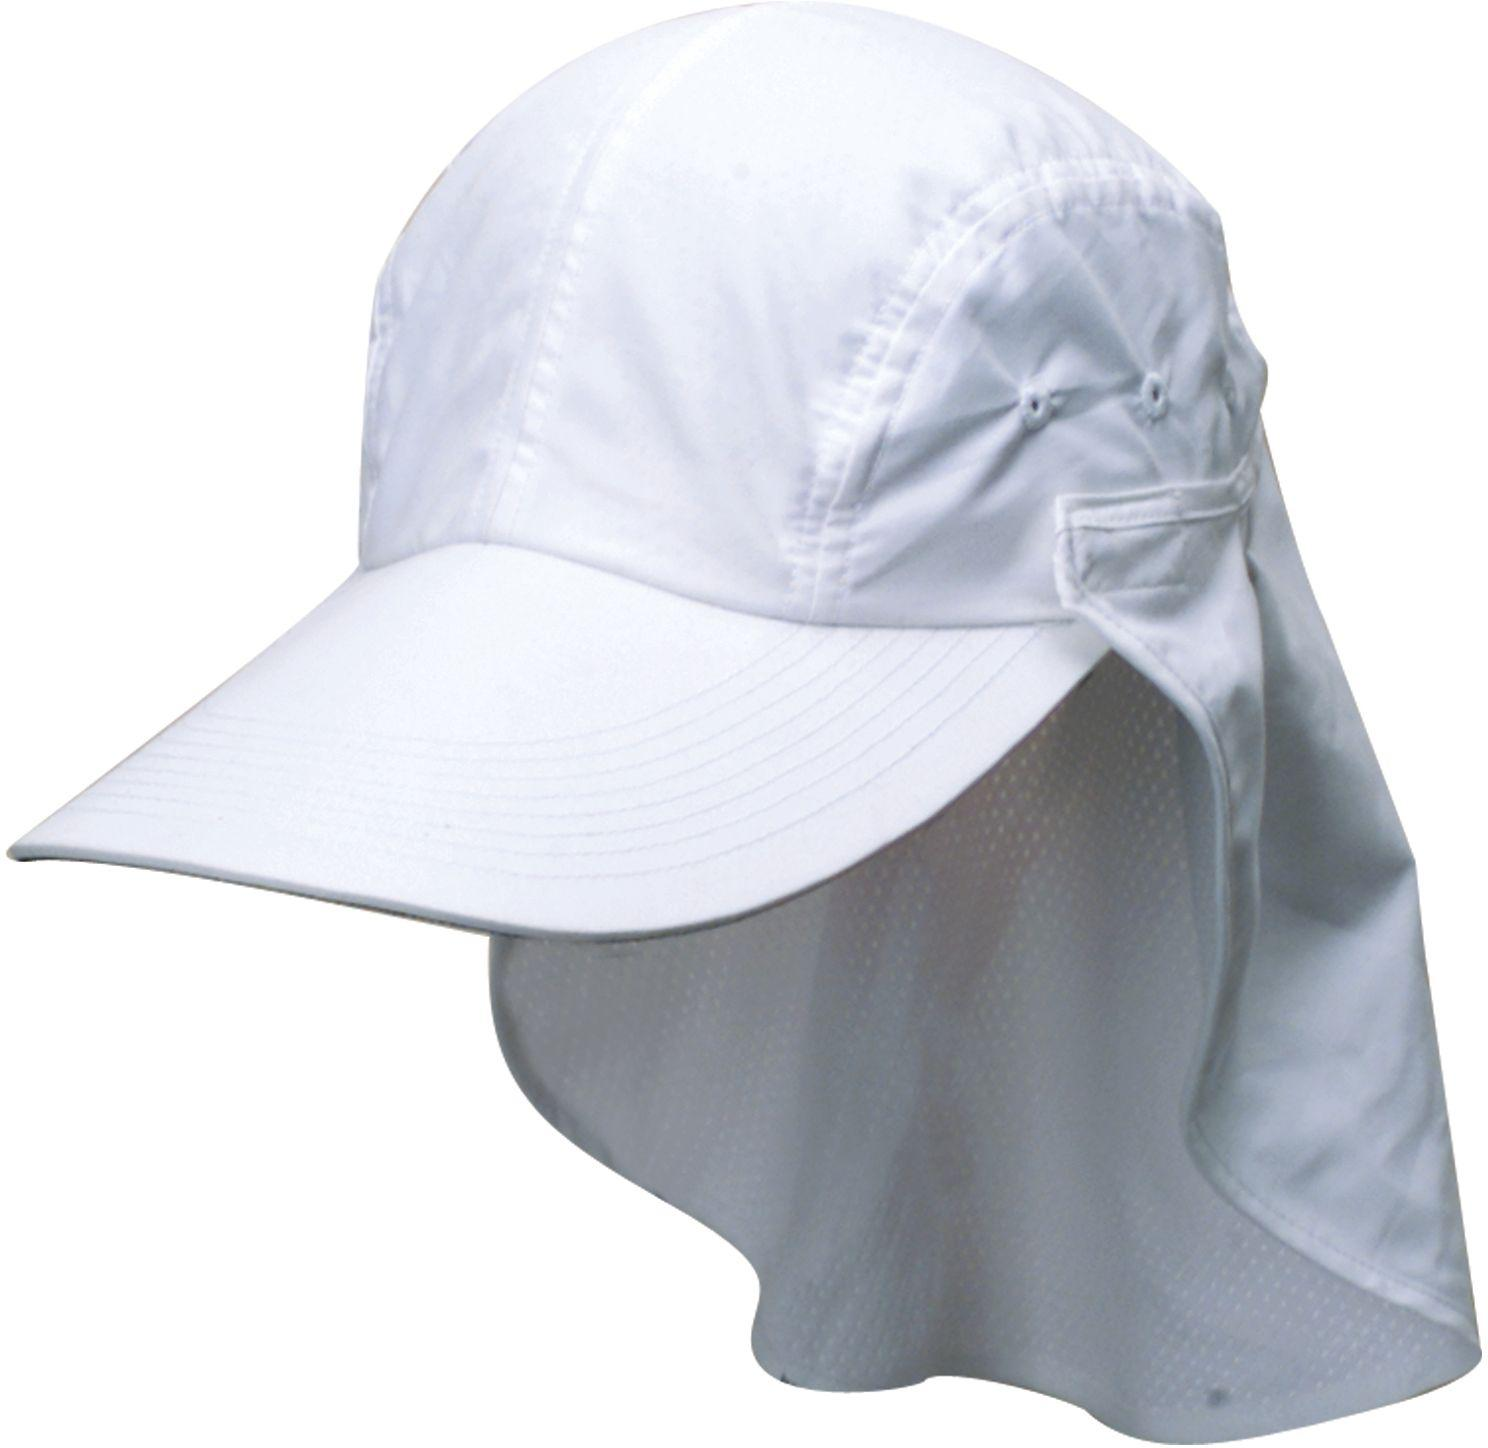 a4ce3eb74ecf6 Lyst - Dorfman Pacific Long Bill Fishing Hat in White for Men